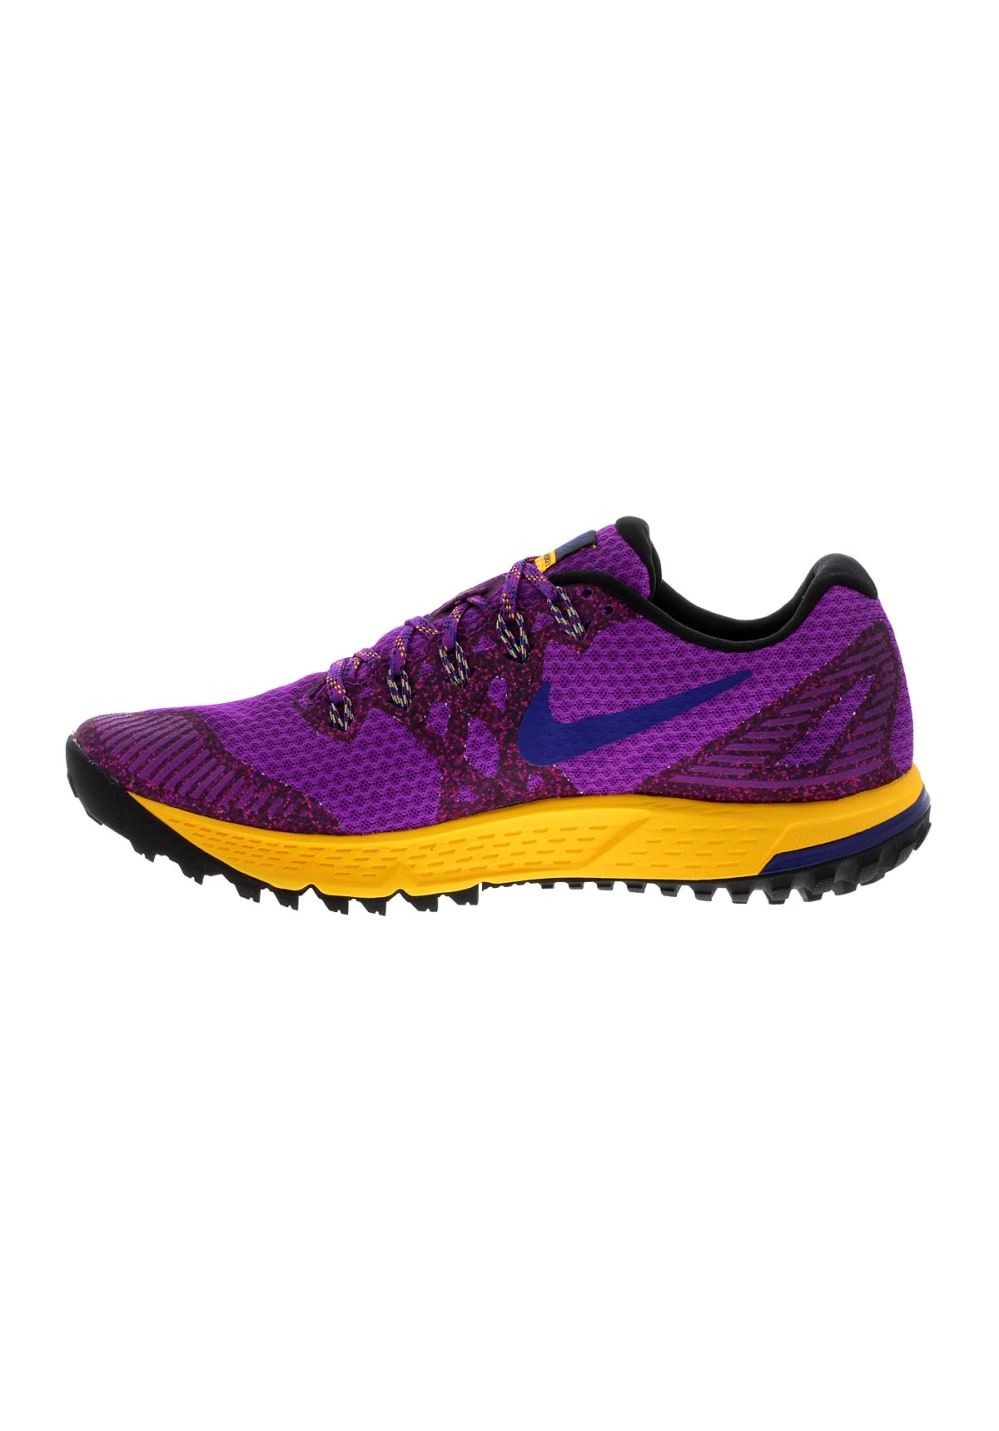 Nike Air Zoom Wildhorse 3 Running shoes for Women Pink